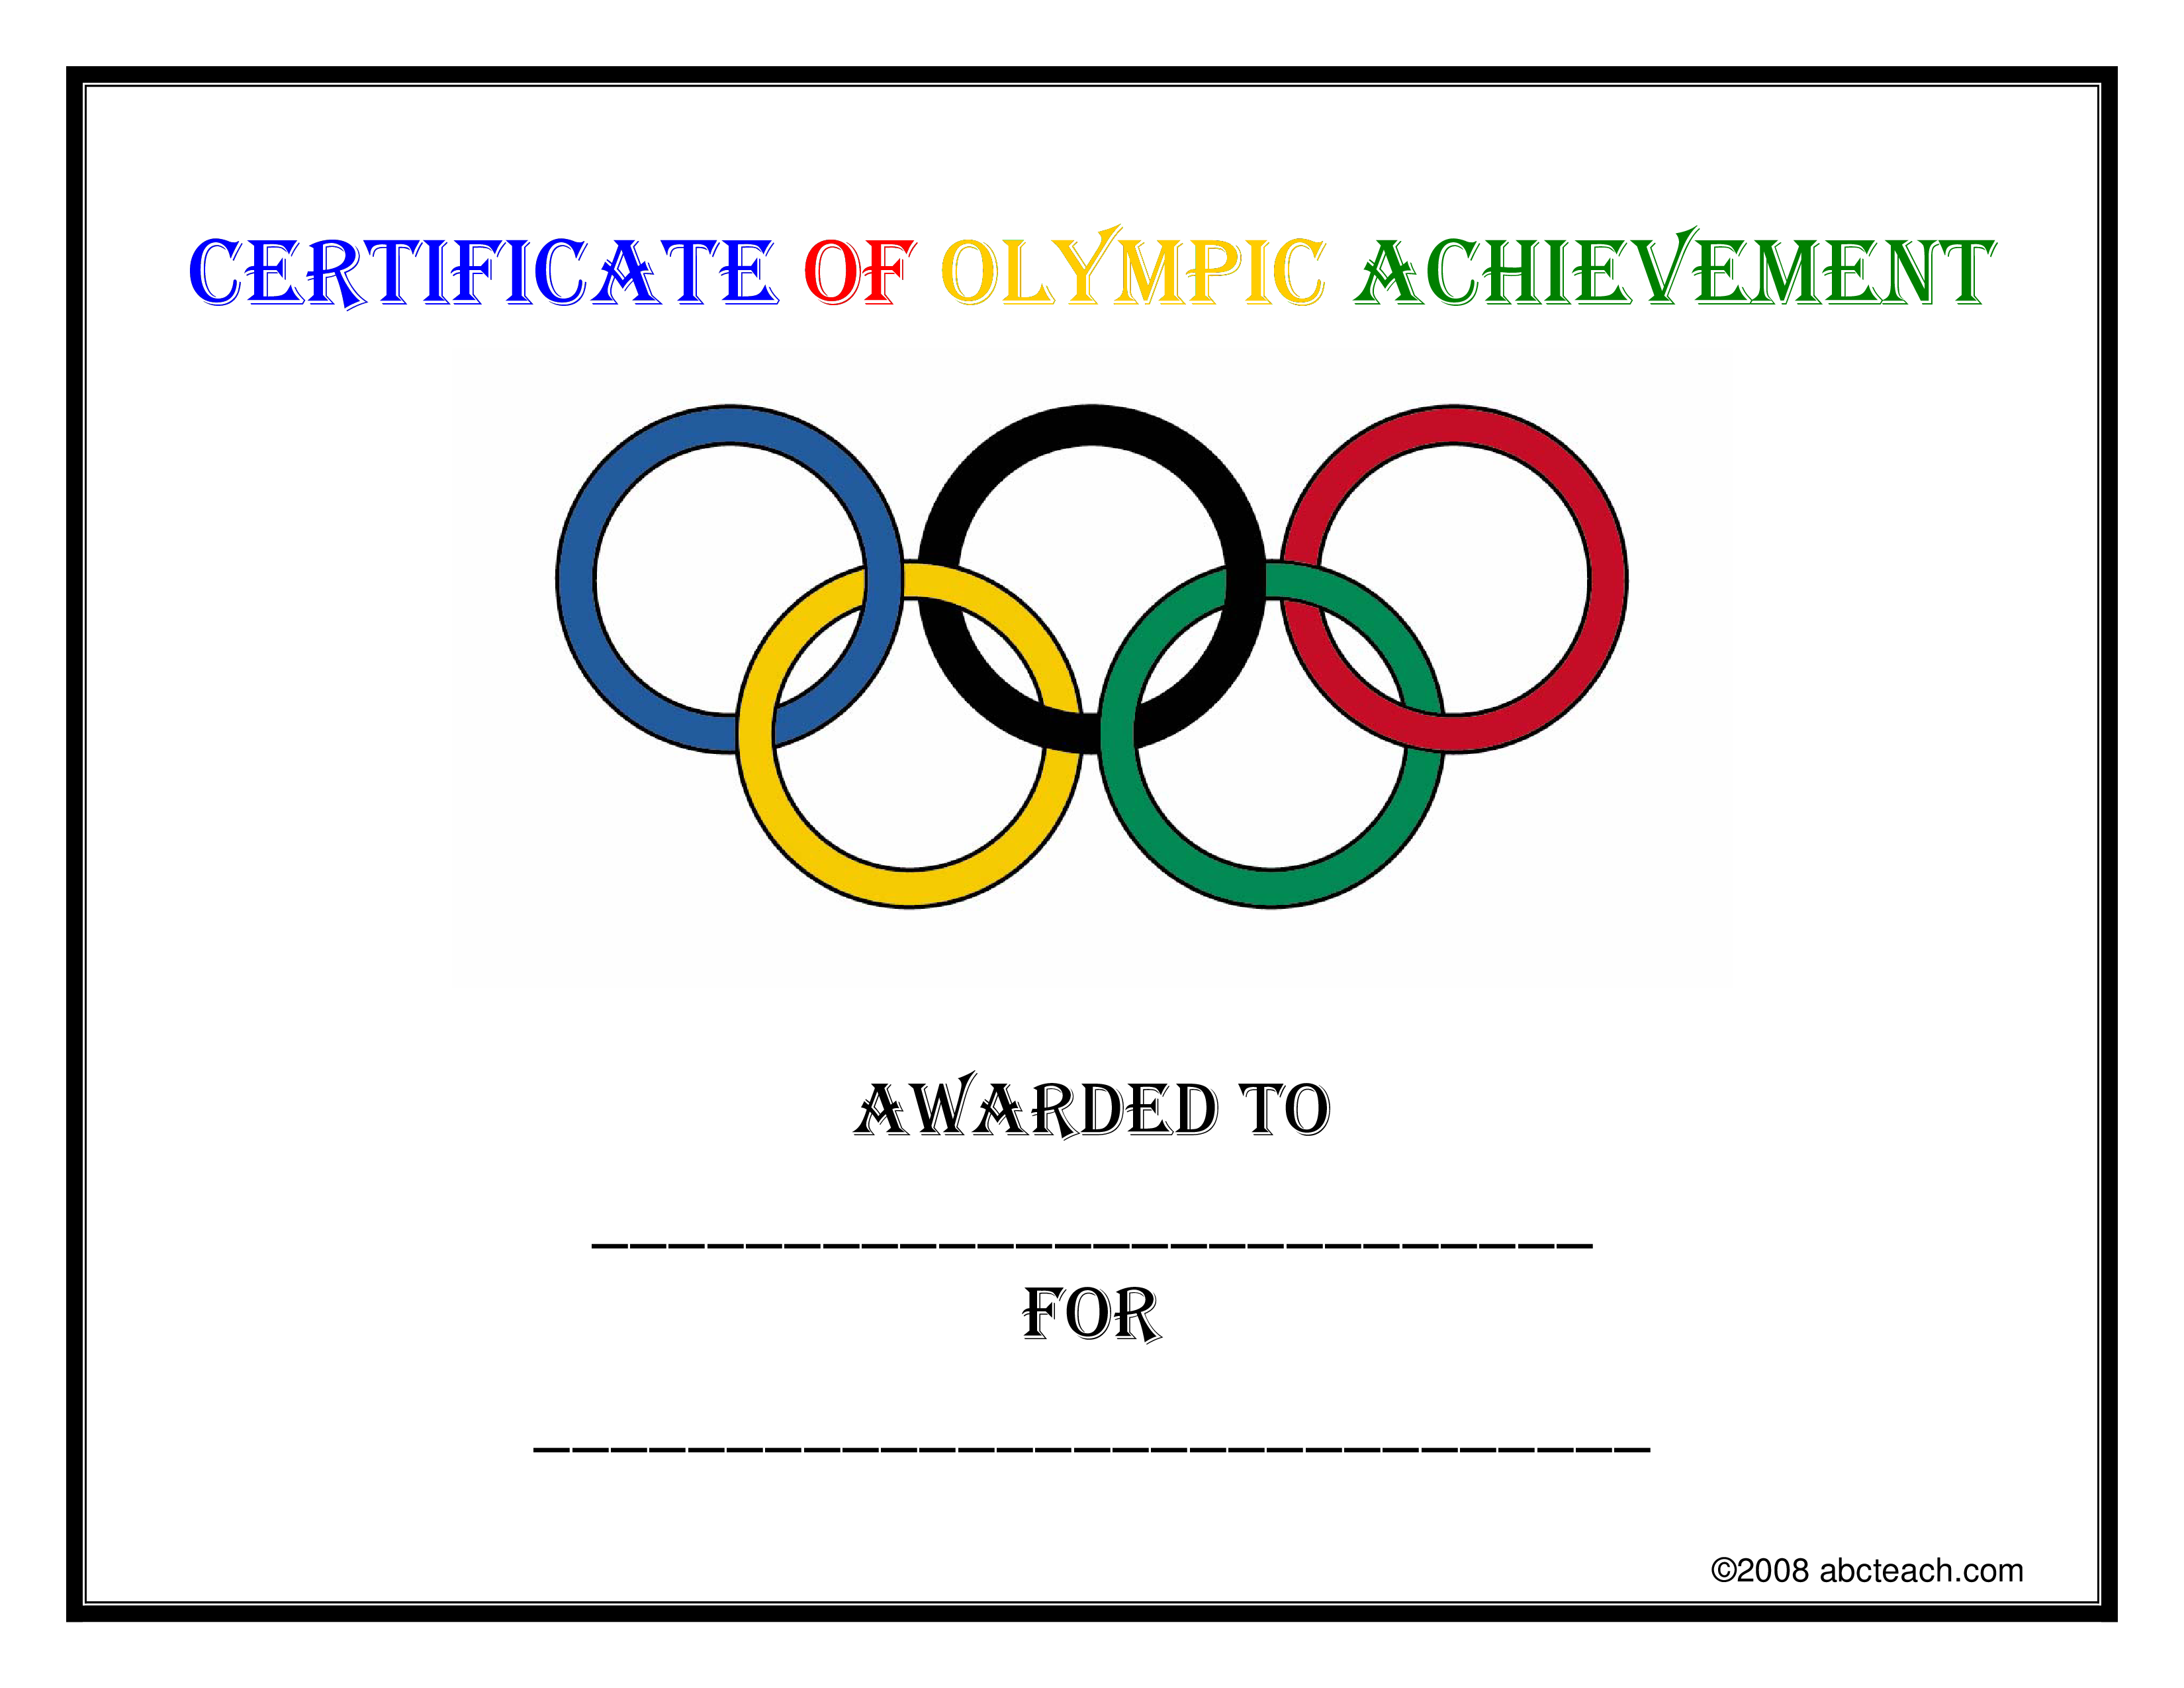 Free Certificate Of Sports Achievement Templates At